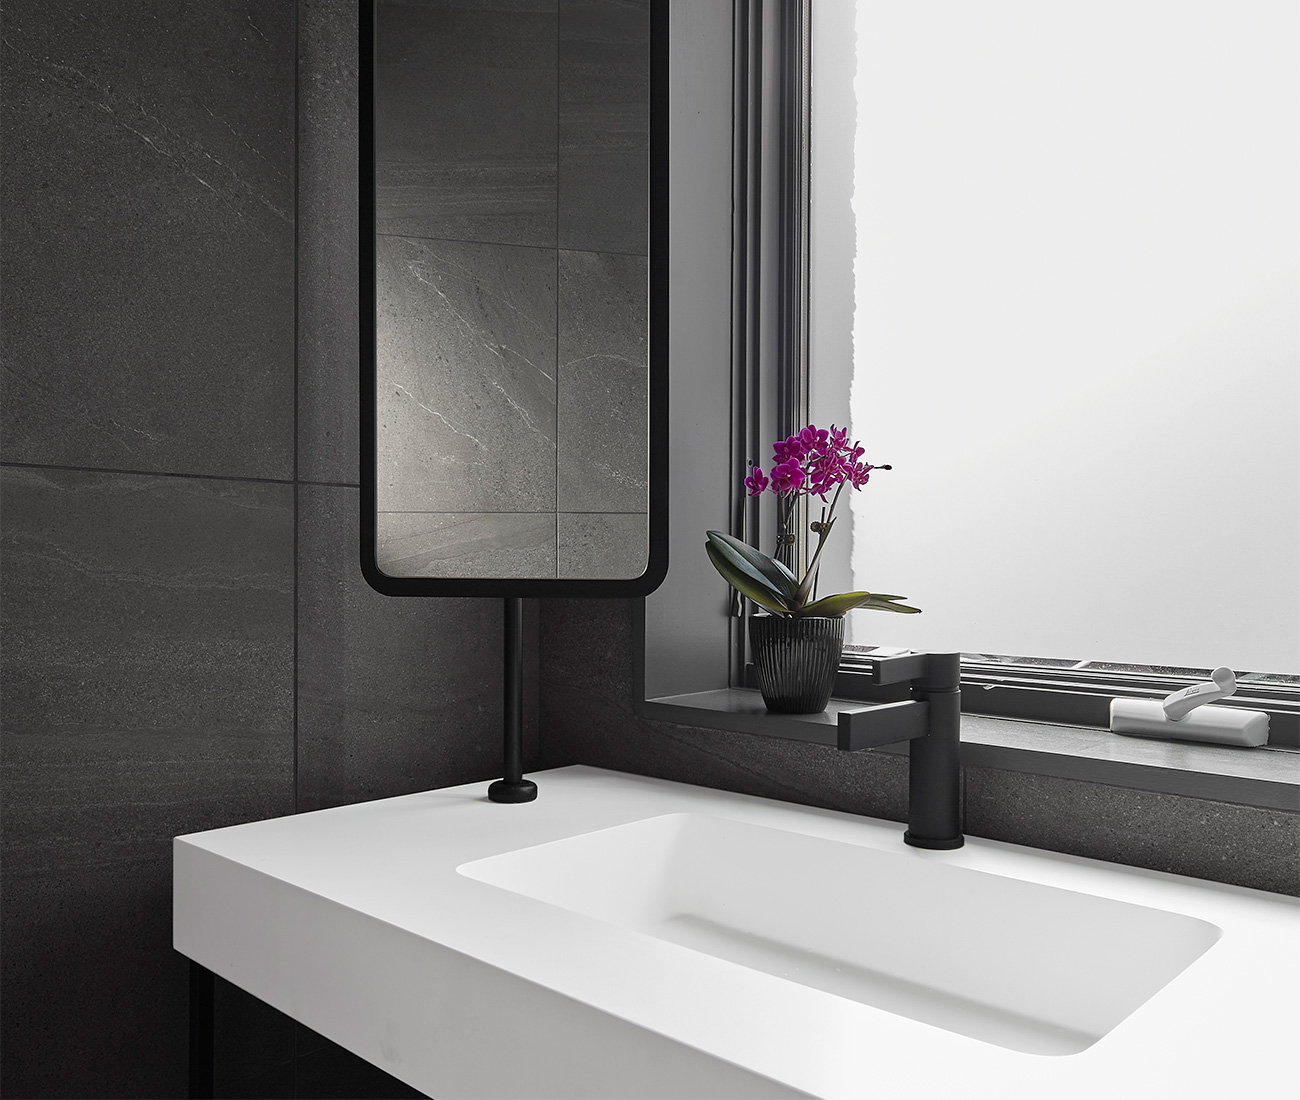 Preferring not to block this powder room's single window, Myers opted for a pivotable mirror (by Homa Signs) instead. Faucet and vanity from Roman Bath.